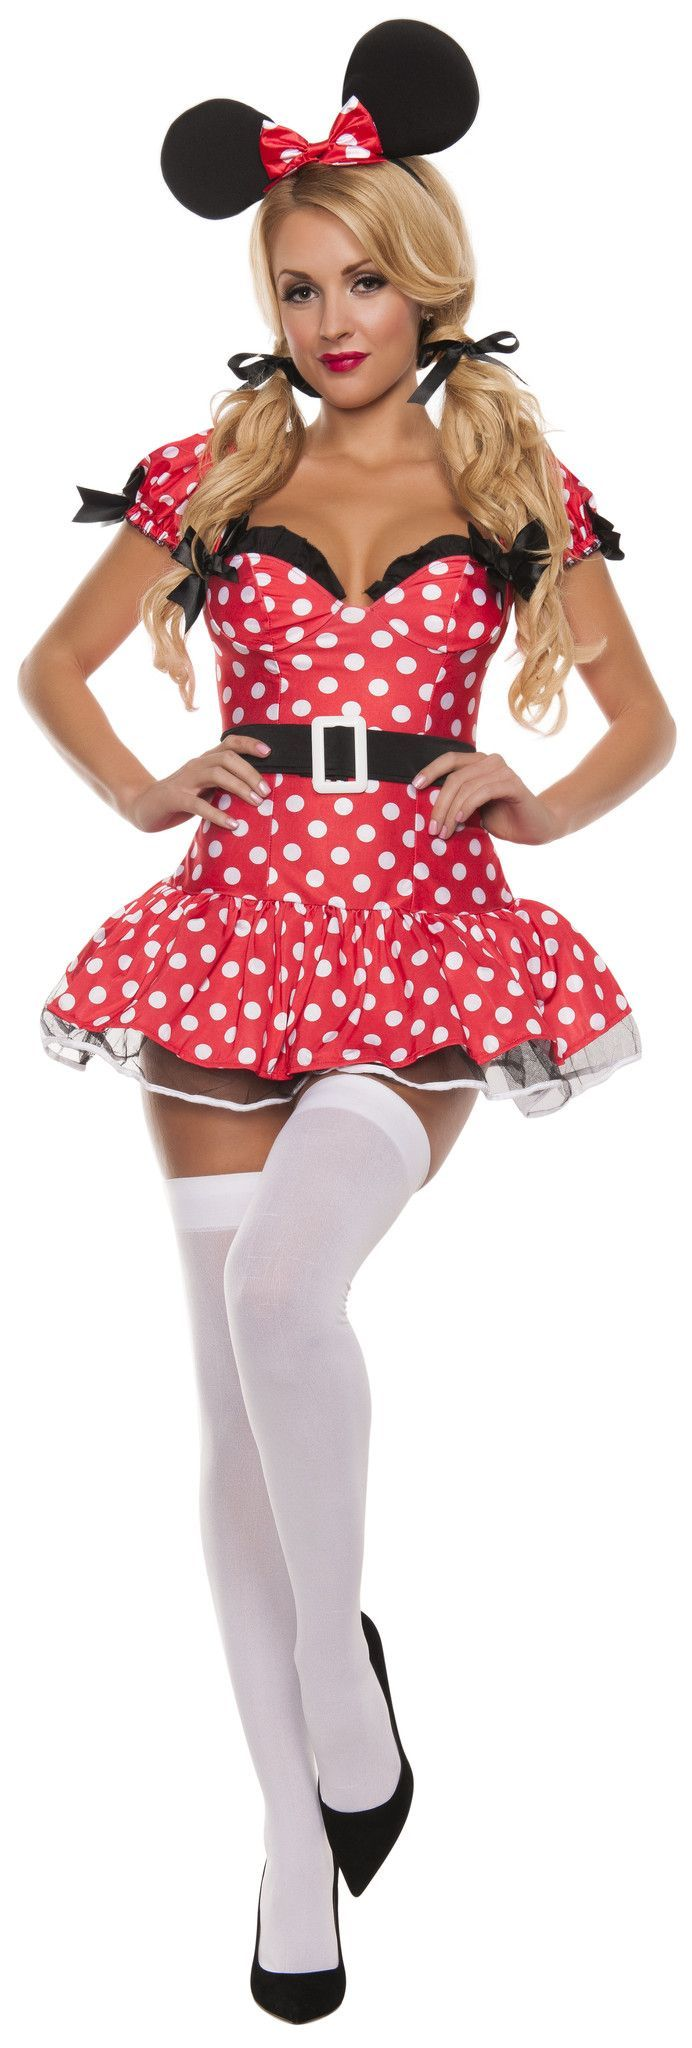 Sexy minnie costume